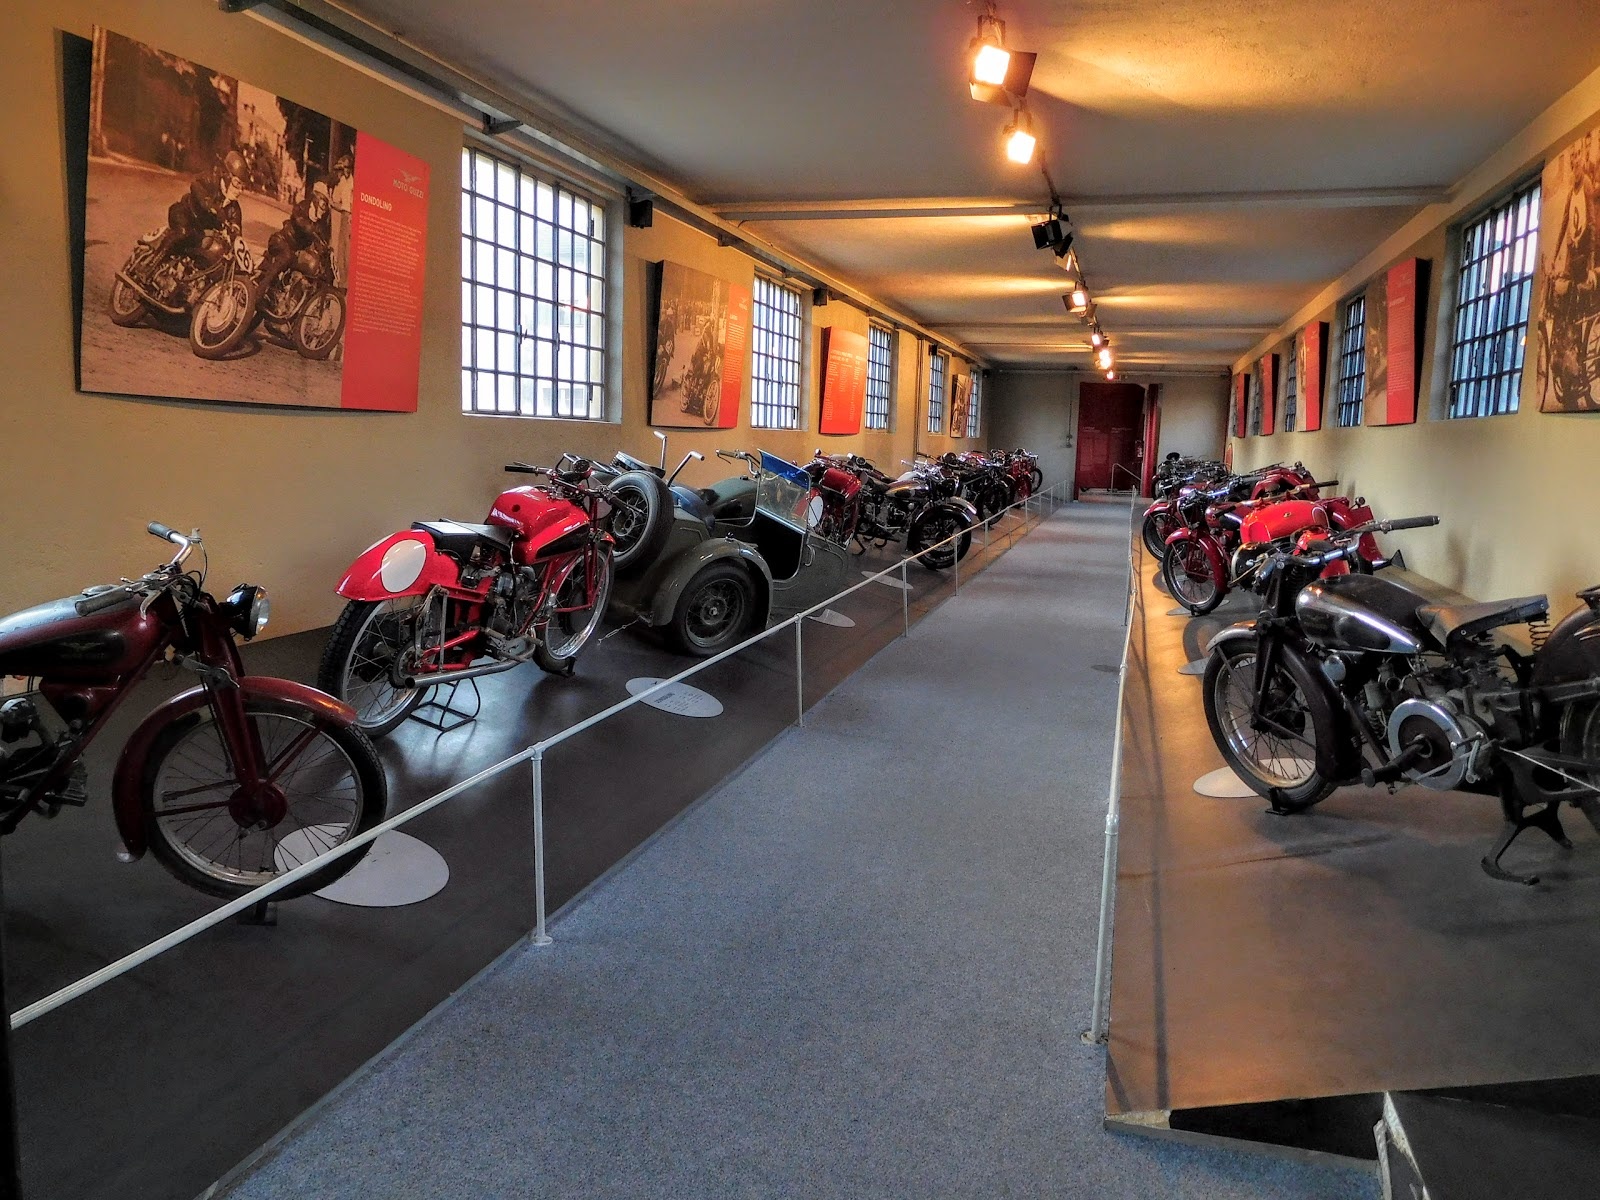 Tigh Loughhead visits the Moto Guzzi Museum with NYDucati